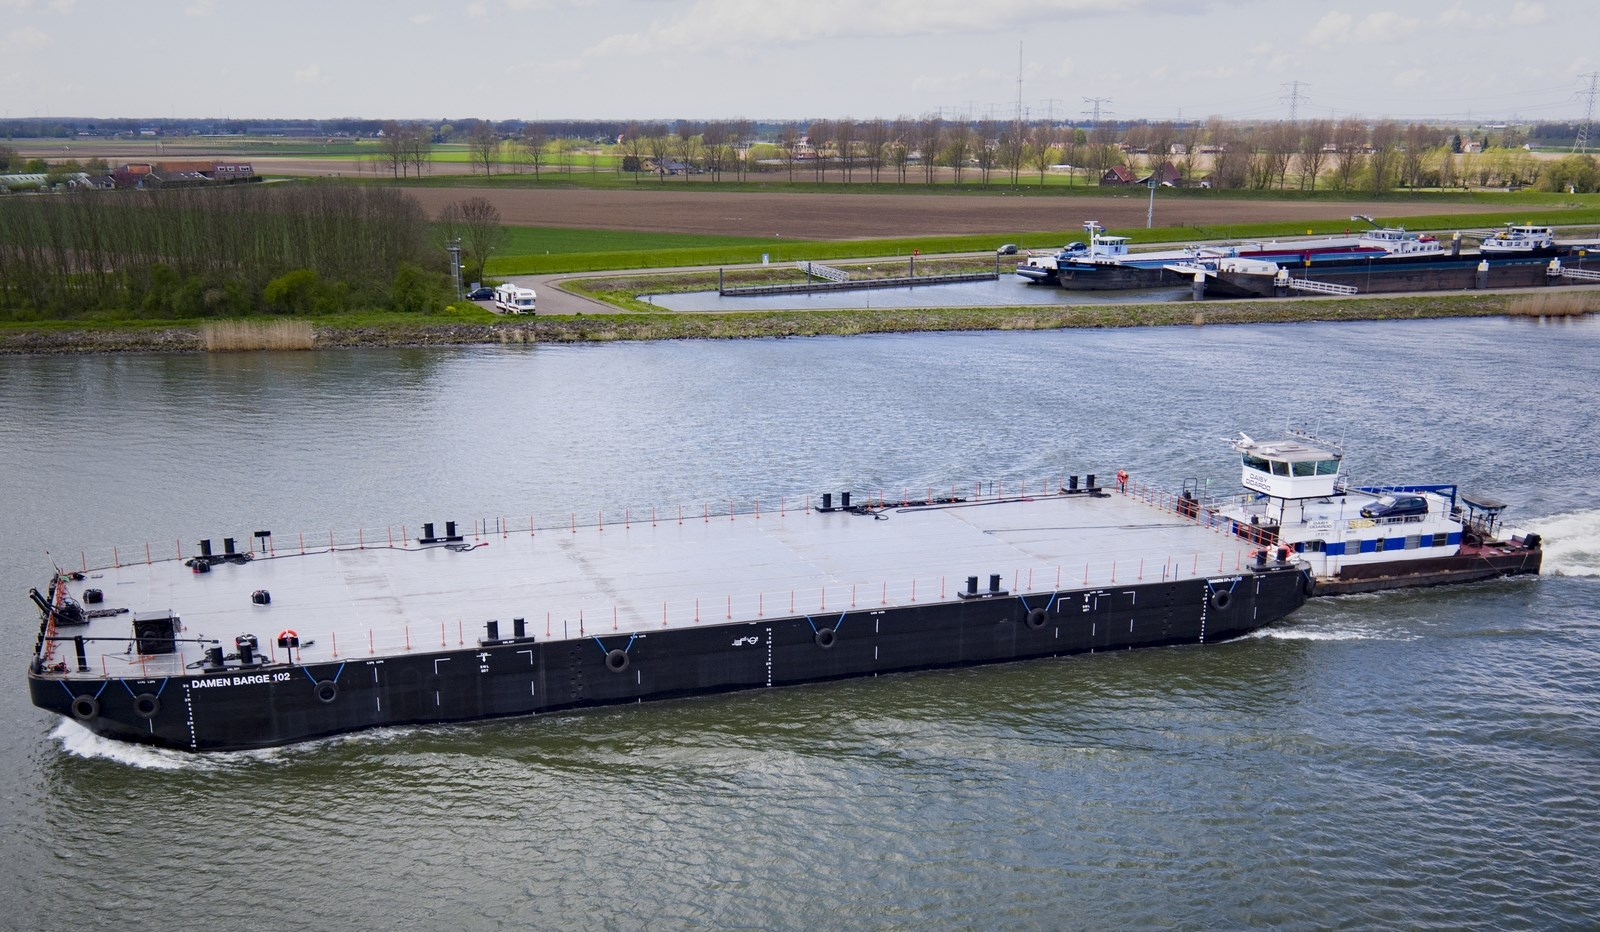 Damen Stan Pontoon 6020 was built in 2015, Damen Shipyards